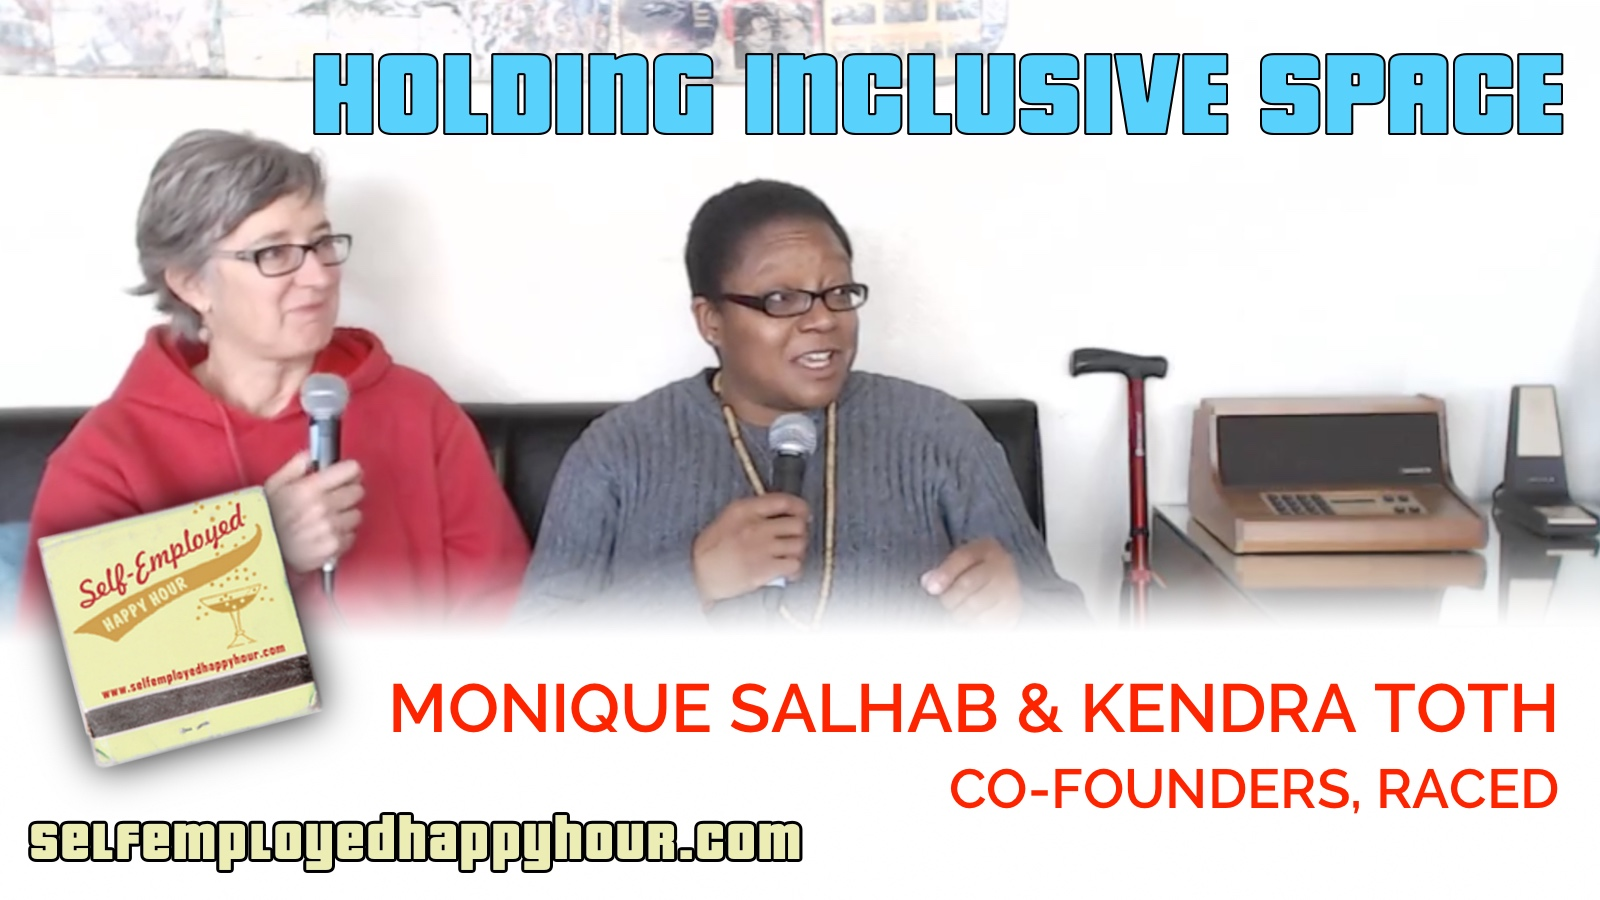 Holding Inclusive Space: Monique Salhab and Kendra Toth, Co-Founders of RACED